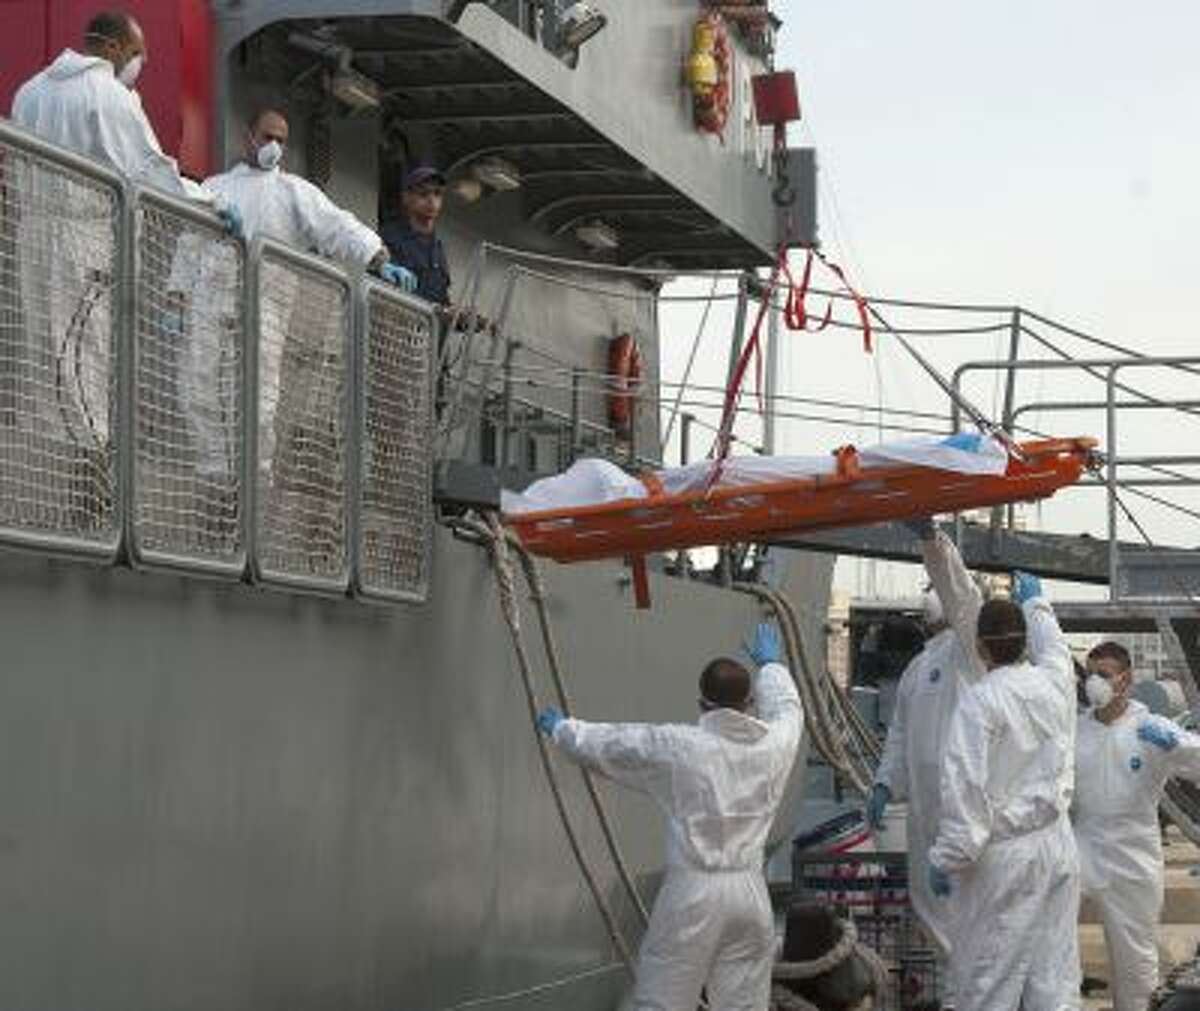 A body is being lowered down from a Maltese Navy ship at the Valletta harbor, Malta, Saturday, Oct. 12, 2013.